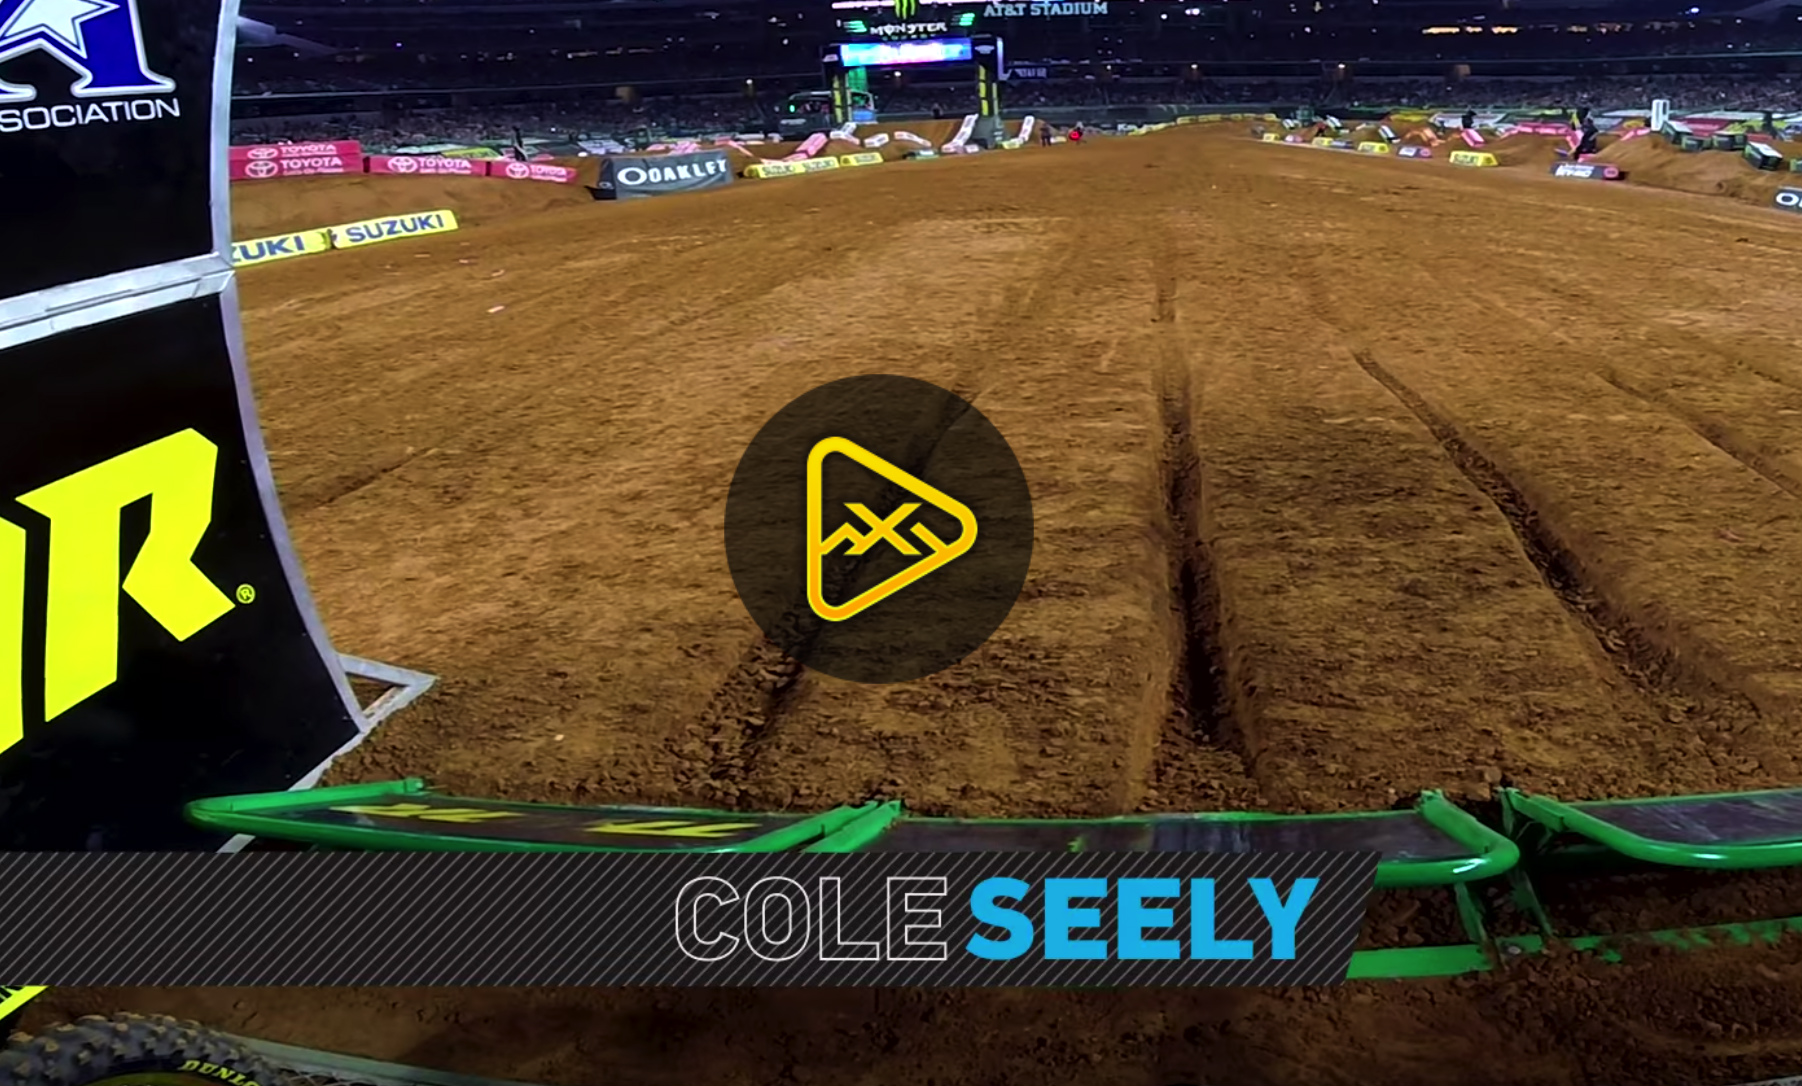 GoPro – Cole Seely at 2018 Arlington SX